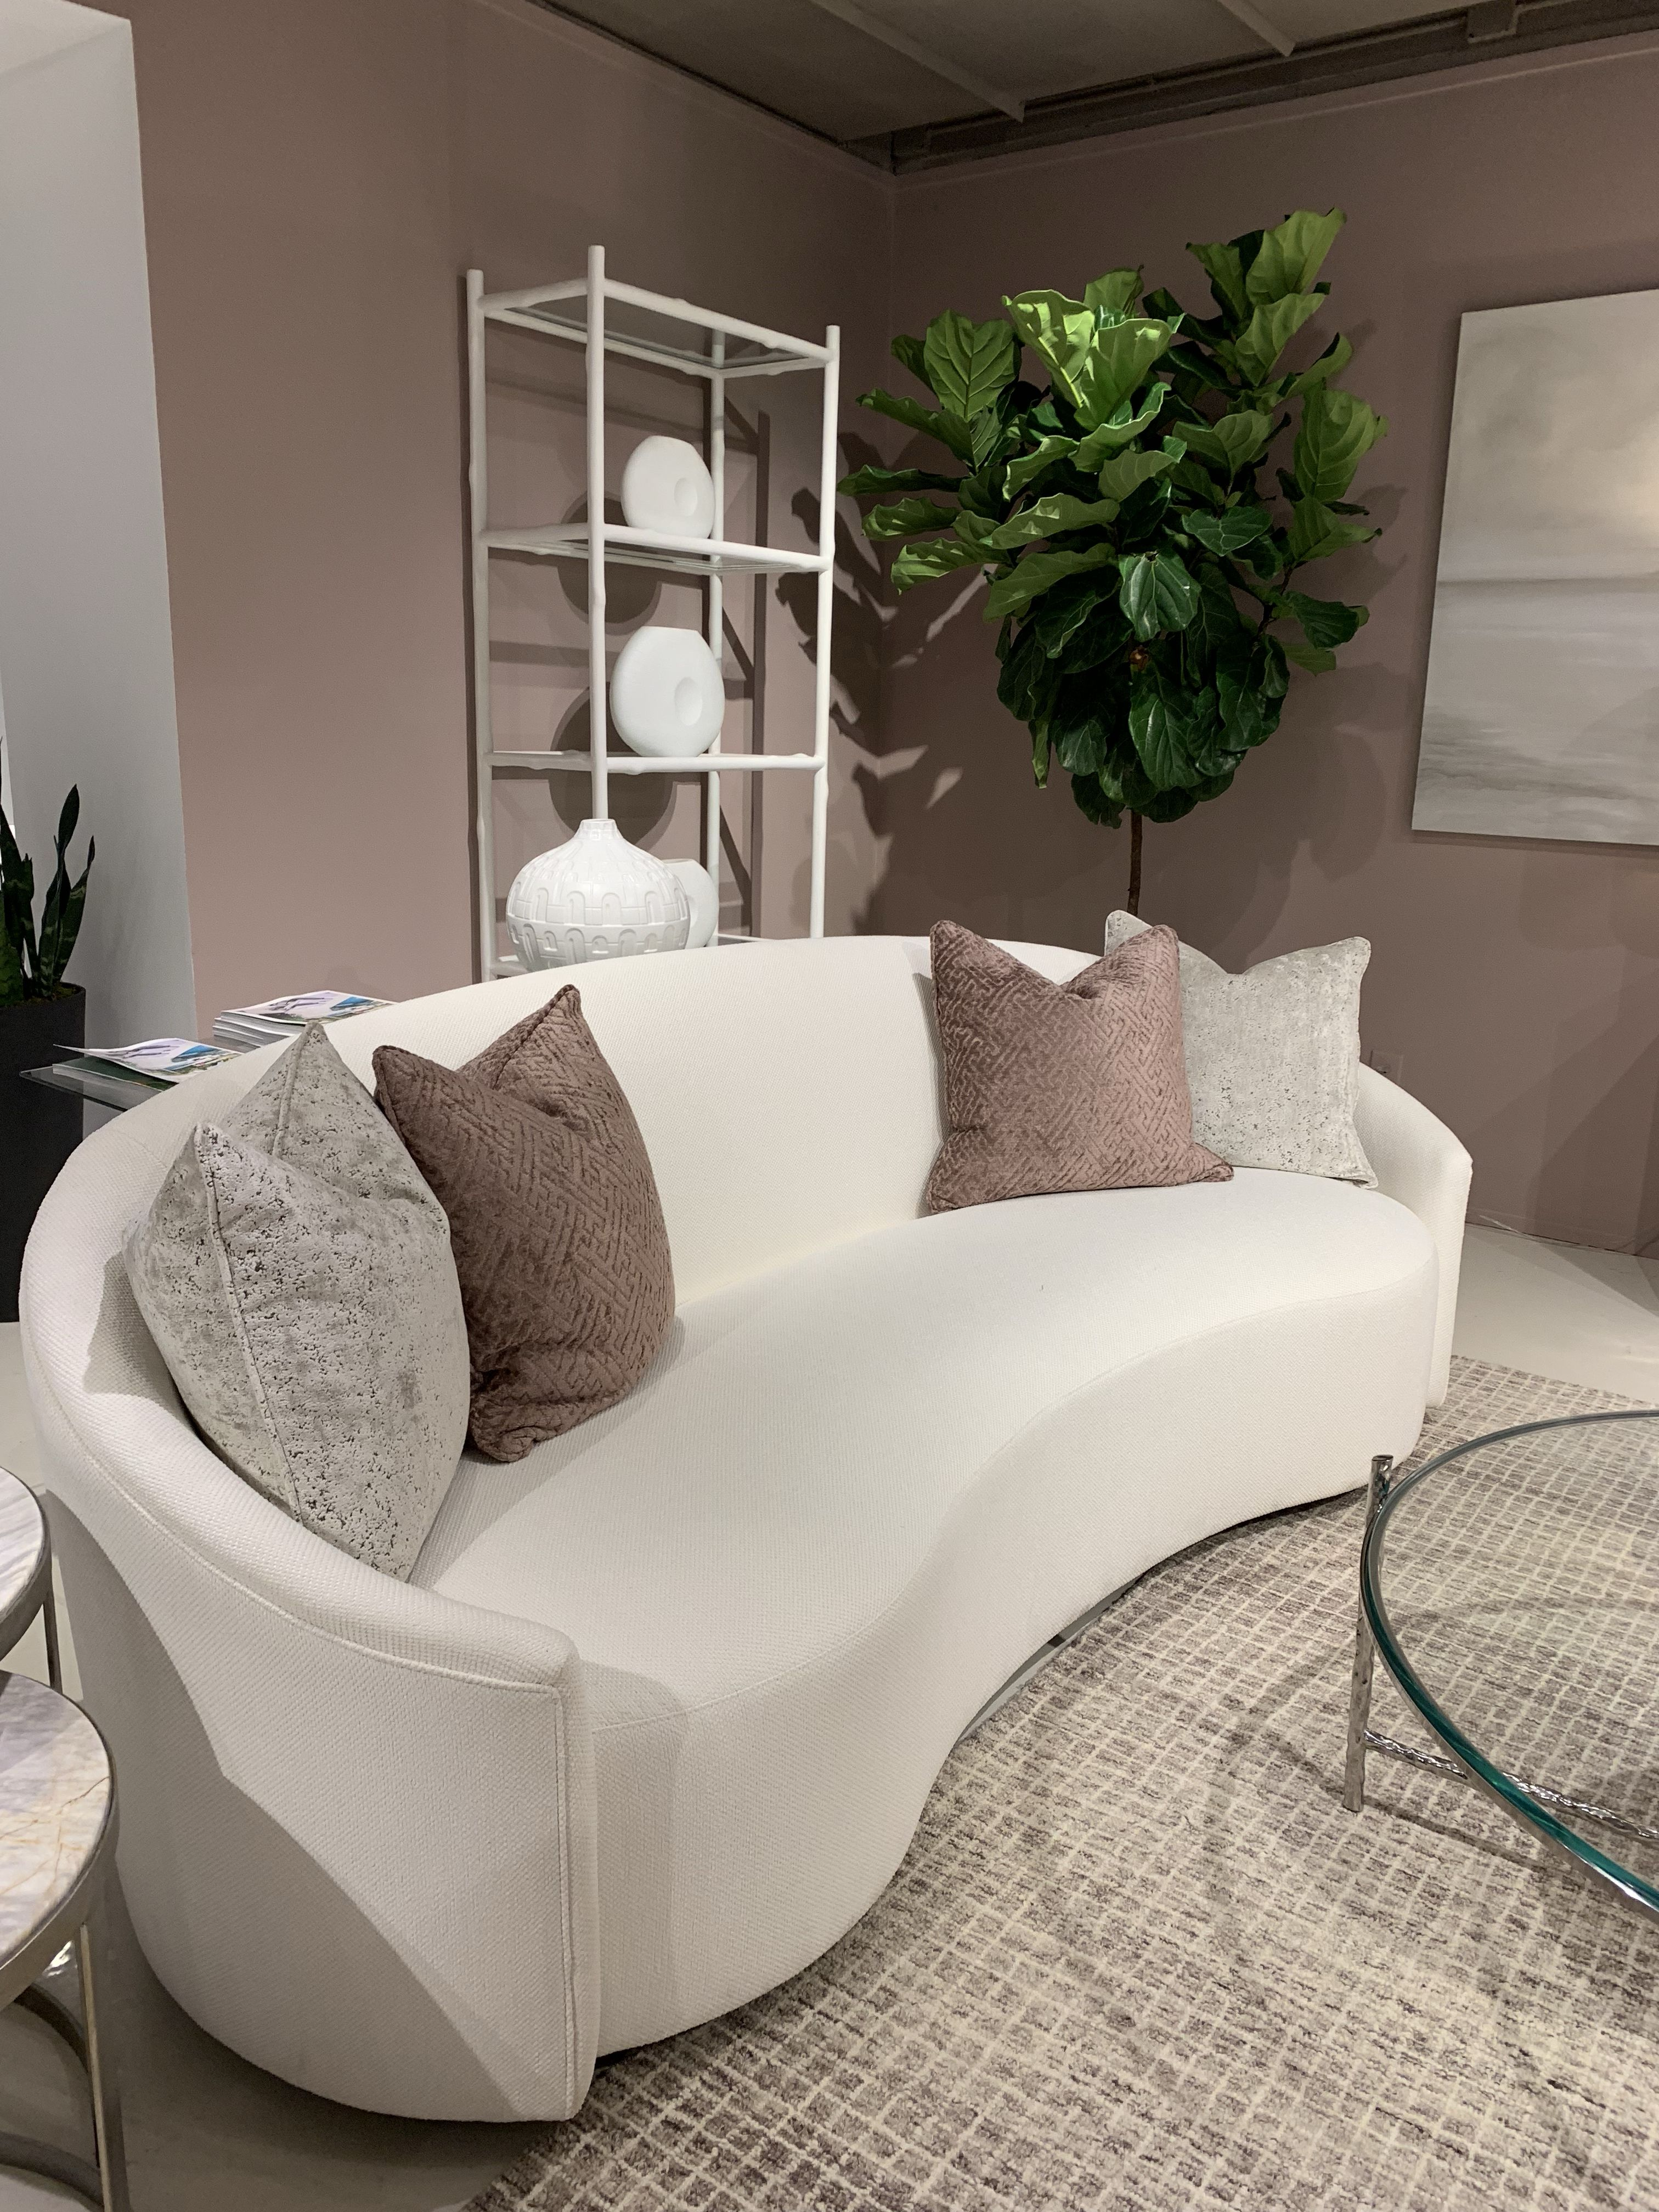 The Lumen Sofa By Bernhardt Interiors Is A Classic Study In Nostalgia Made Modern Its Soft Kidney Shaped Symmetry Is Highli Interior Design Furniture Interior